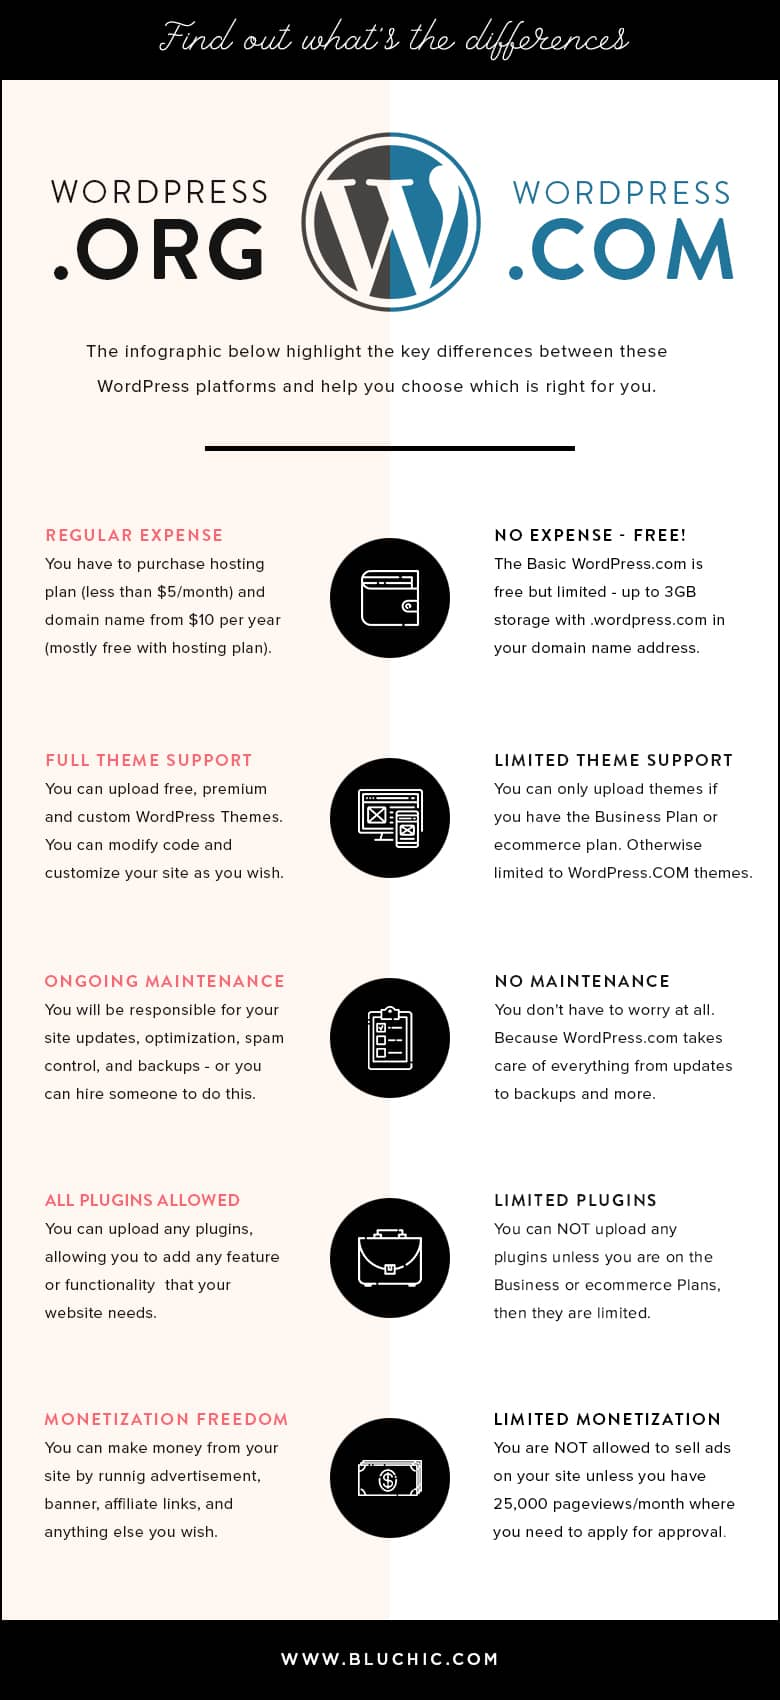 WordPress.com vs WordPress.org [Infographic] | The differences between WordPess.com vs WordPress.org, so you can decide which platform is right for your business or blog. Plus infographic to help you!